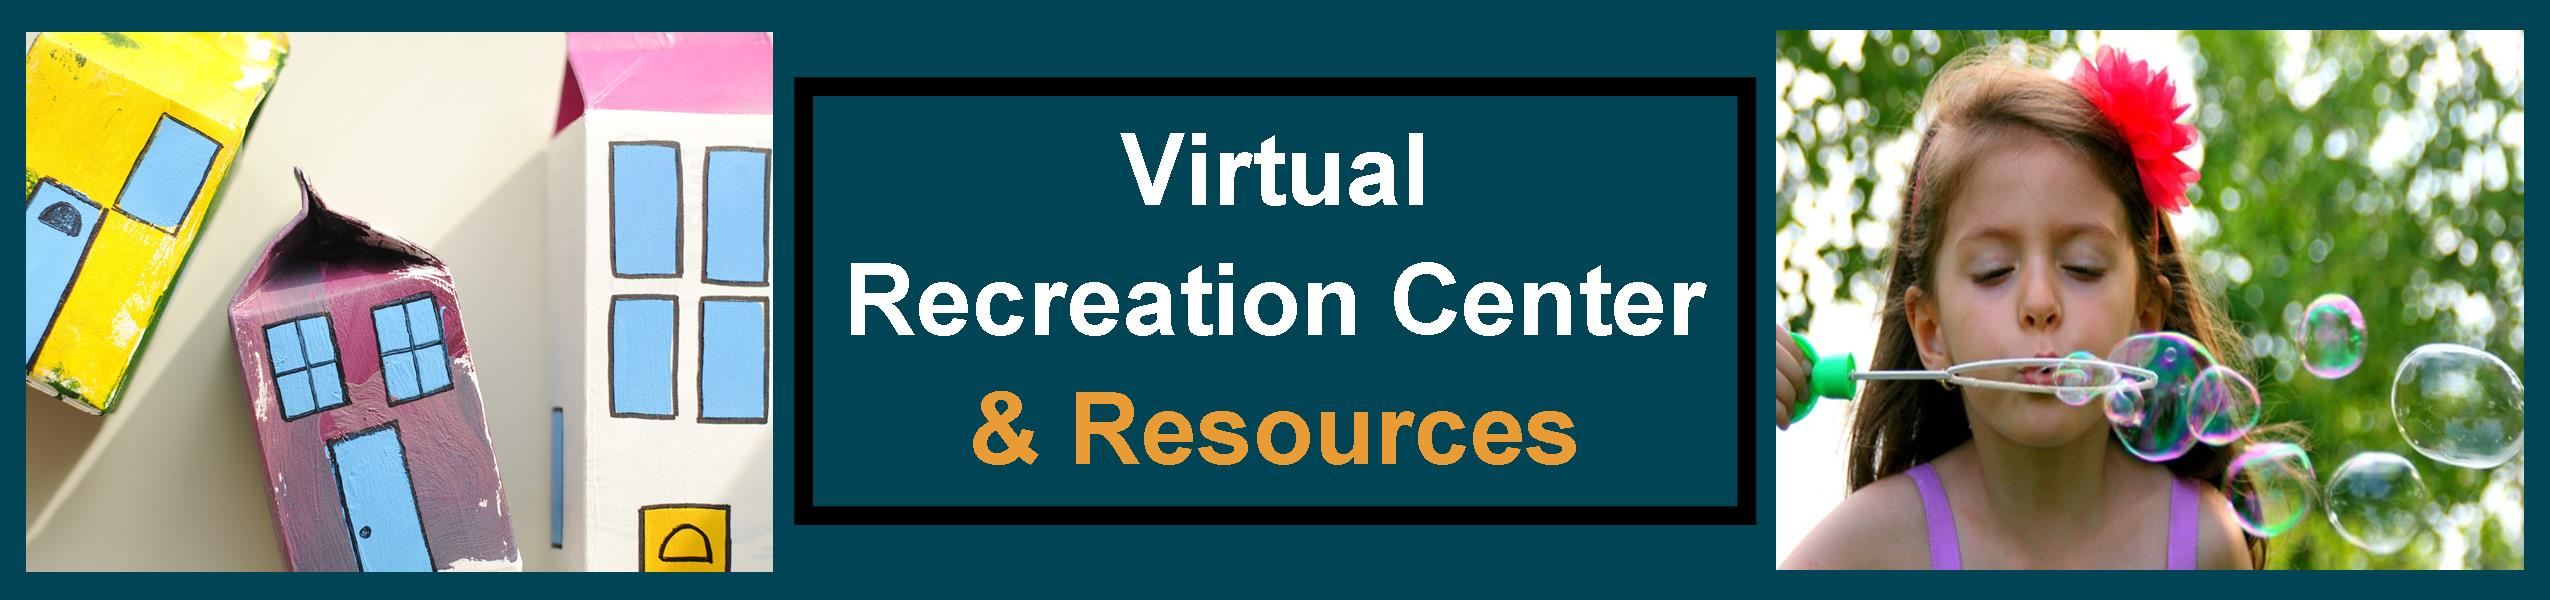 Virtual Recreation Center and Resources